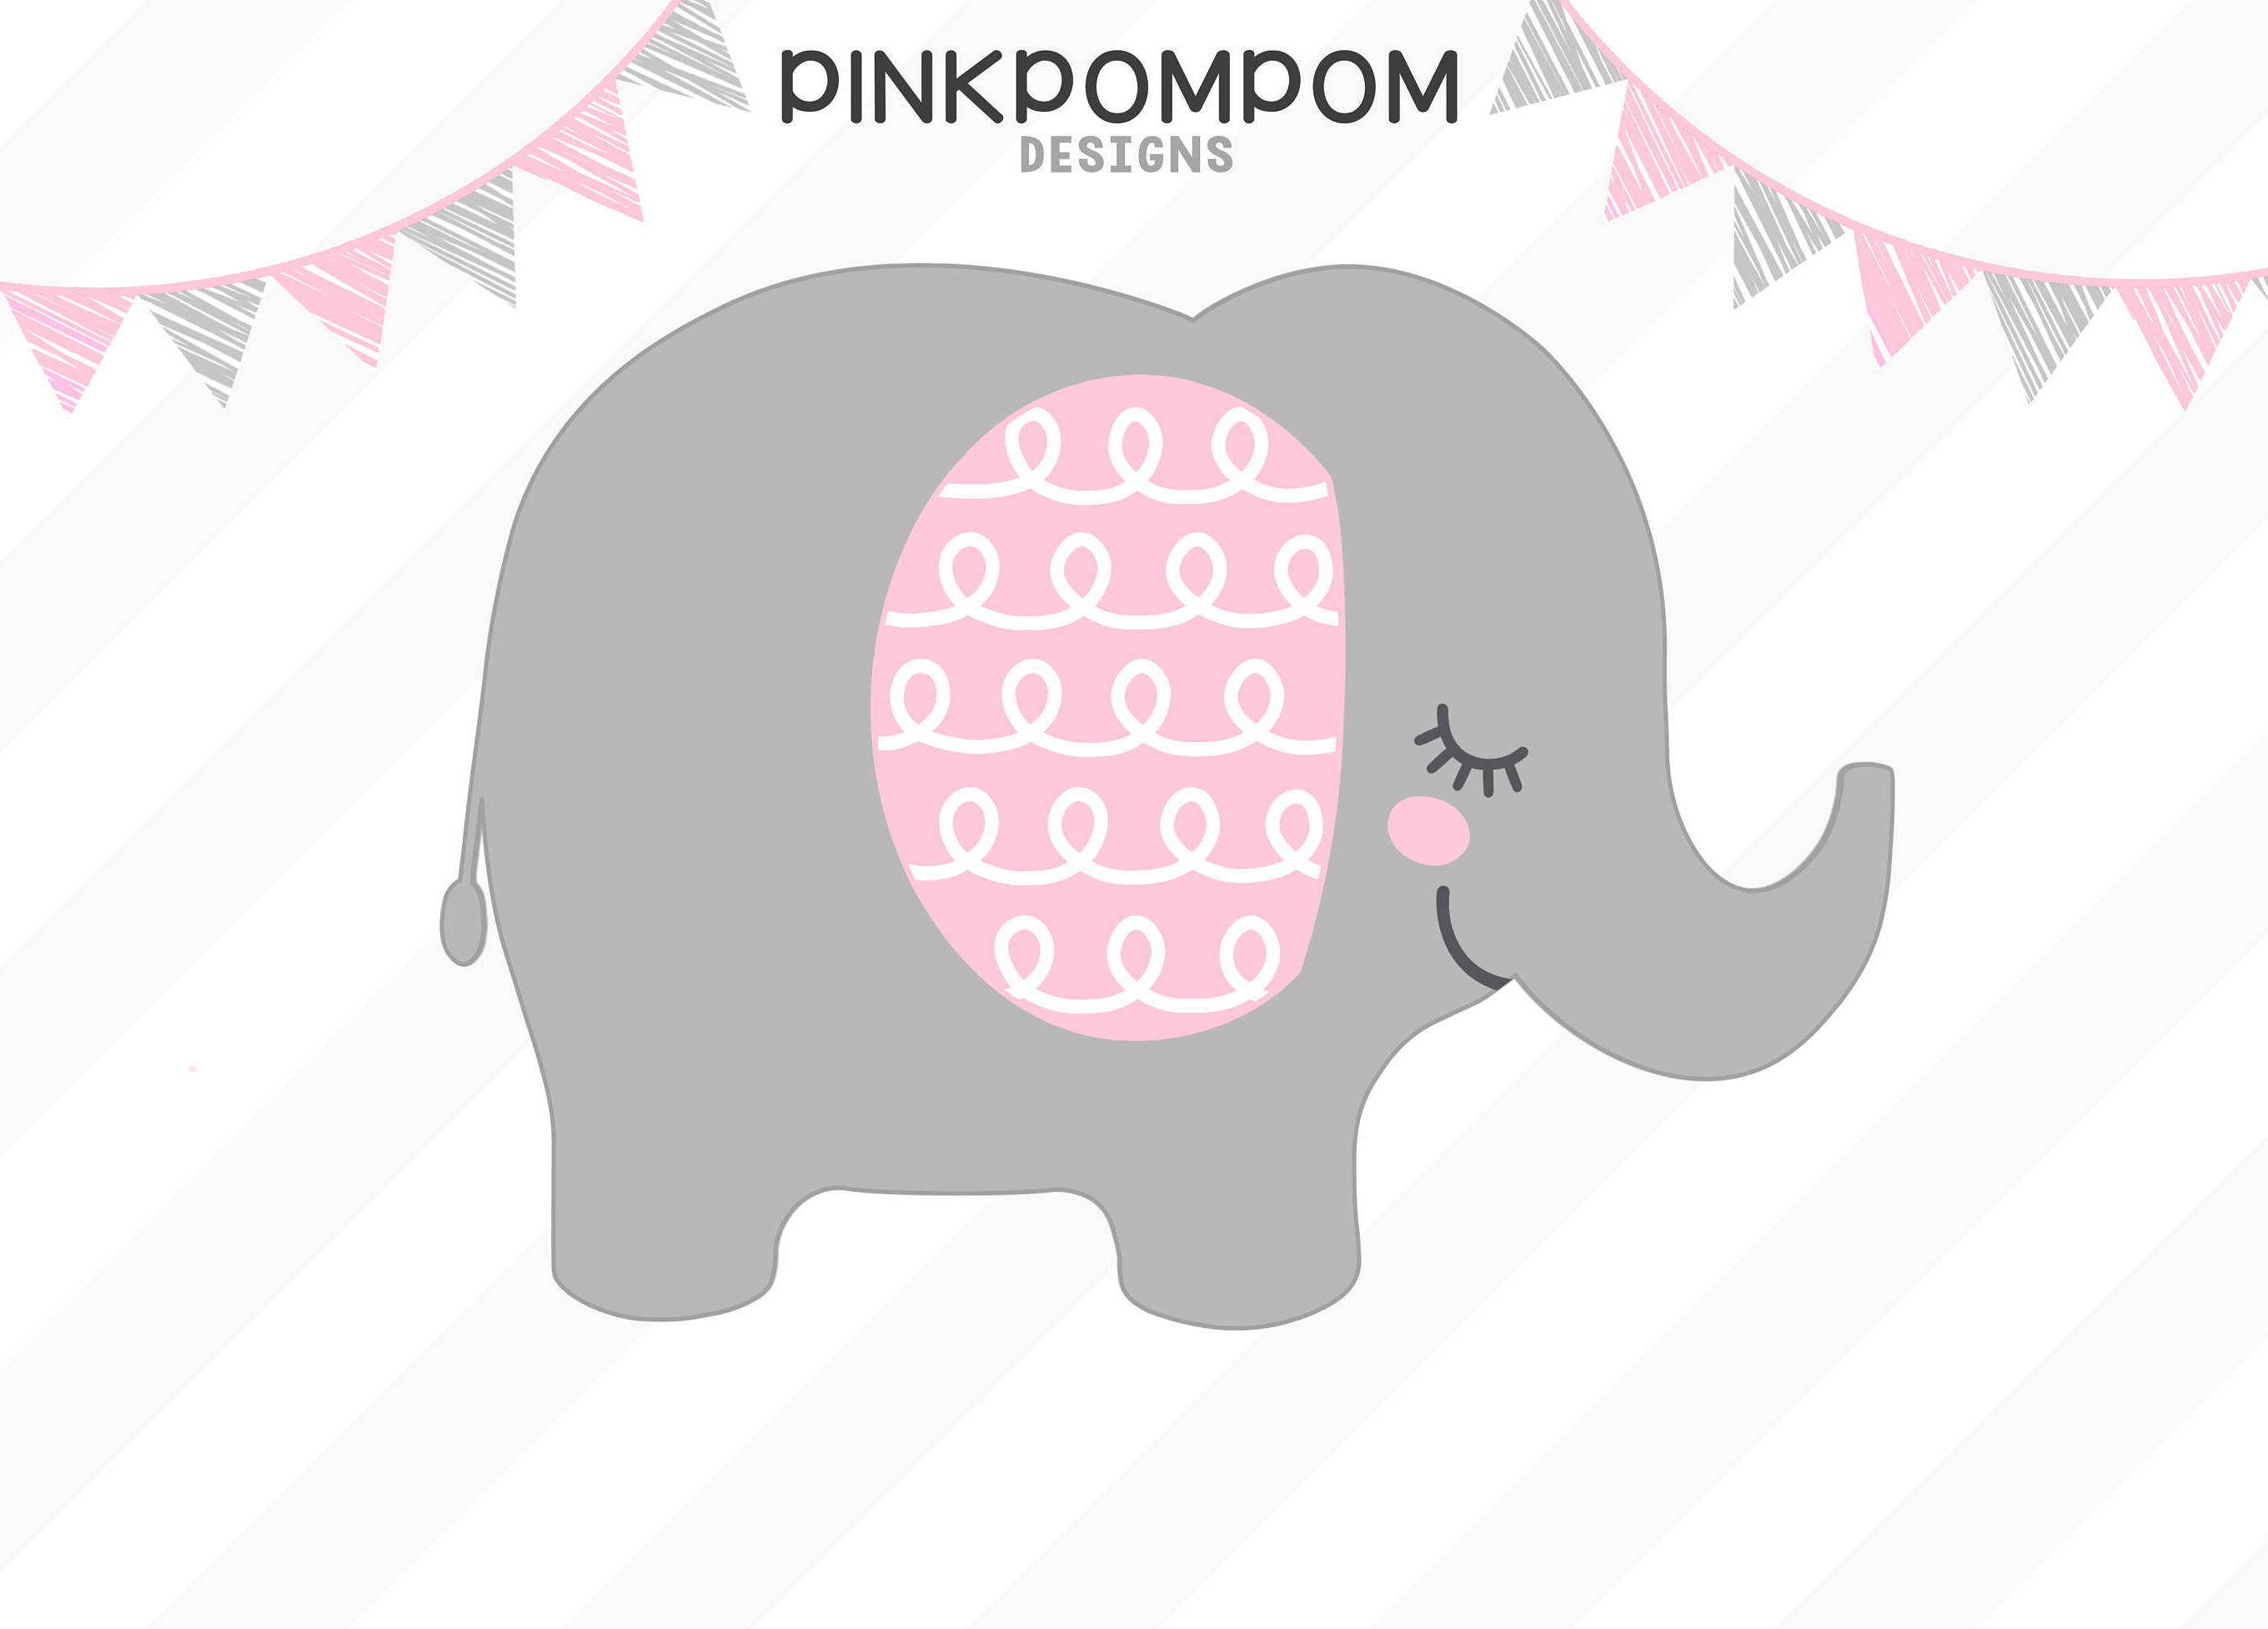 gray baby elephant png transparent gray baby elephant png images pluspng zig zag clip art black and white zig zag arrow clip art